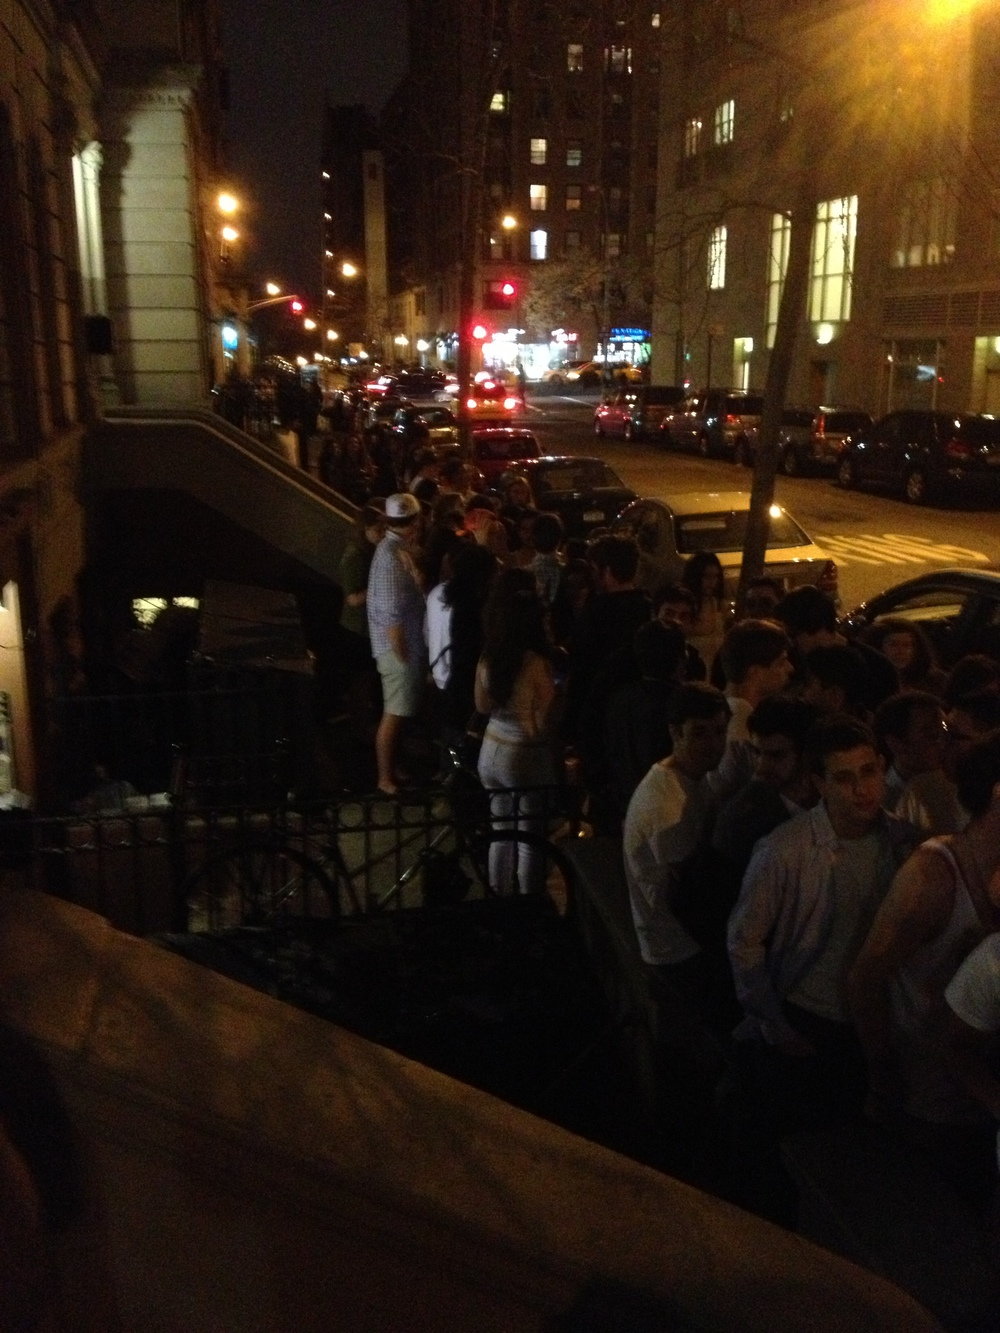 The view from our stoop: We also have social events. They are very well attended.